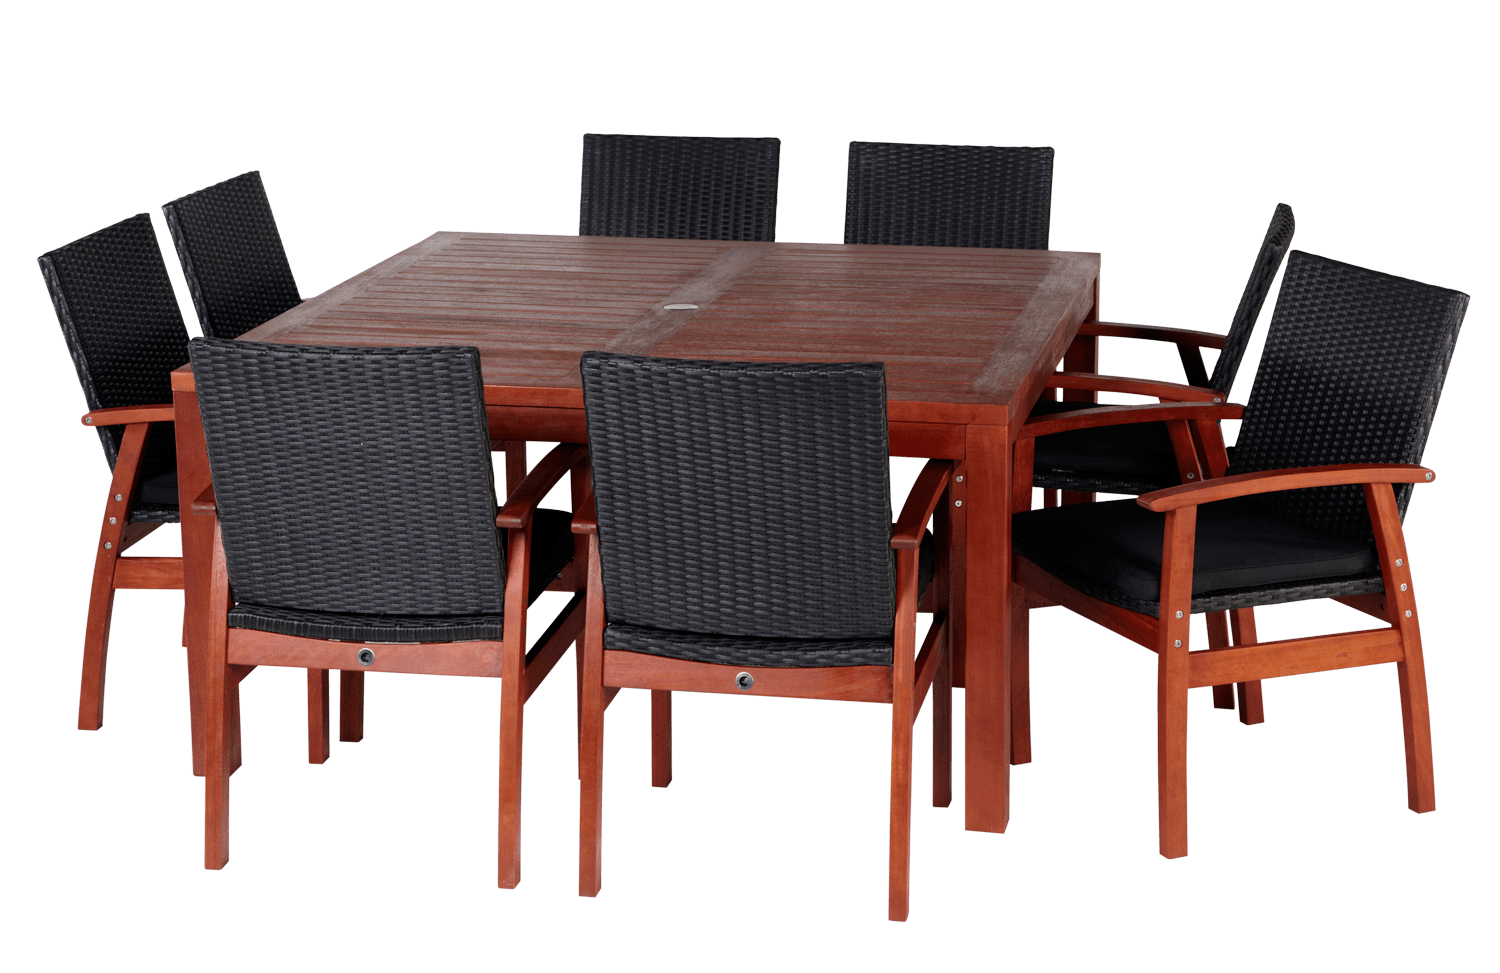 office tables and chairs images toddler saucer chair canada outdoor png hd transparent pluspng